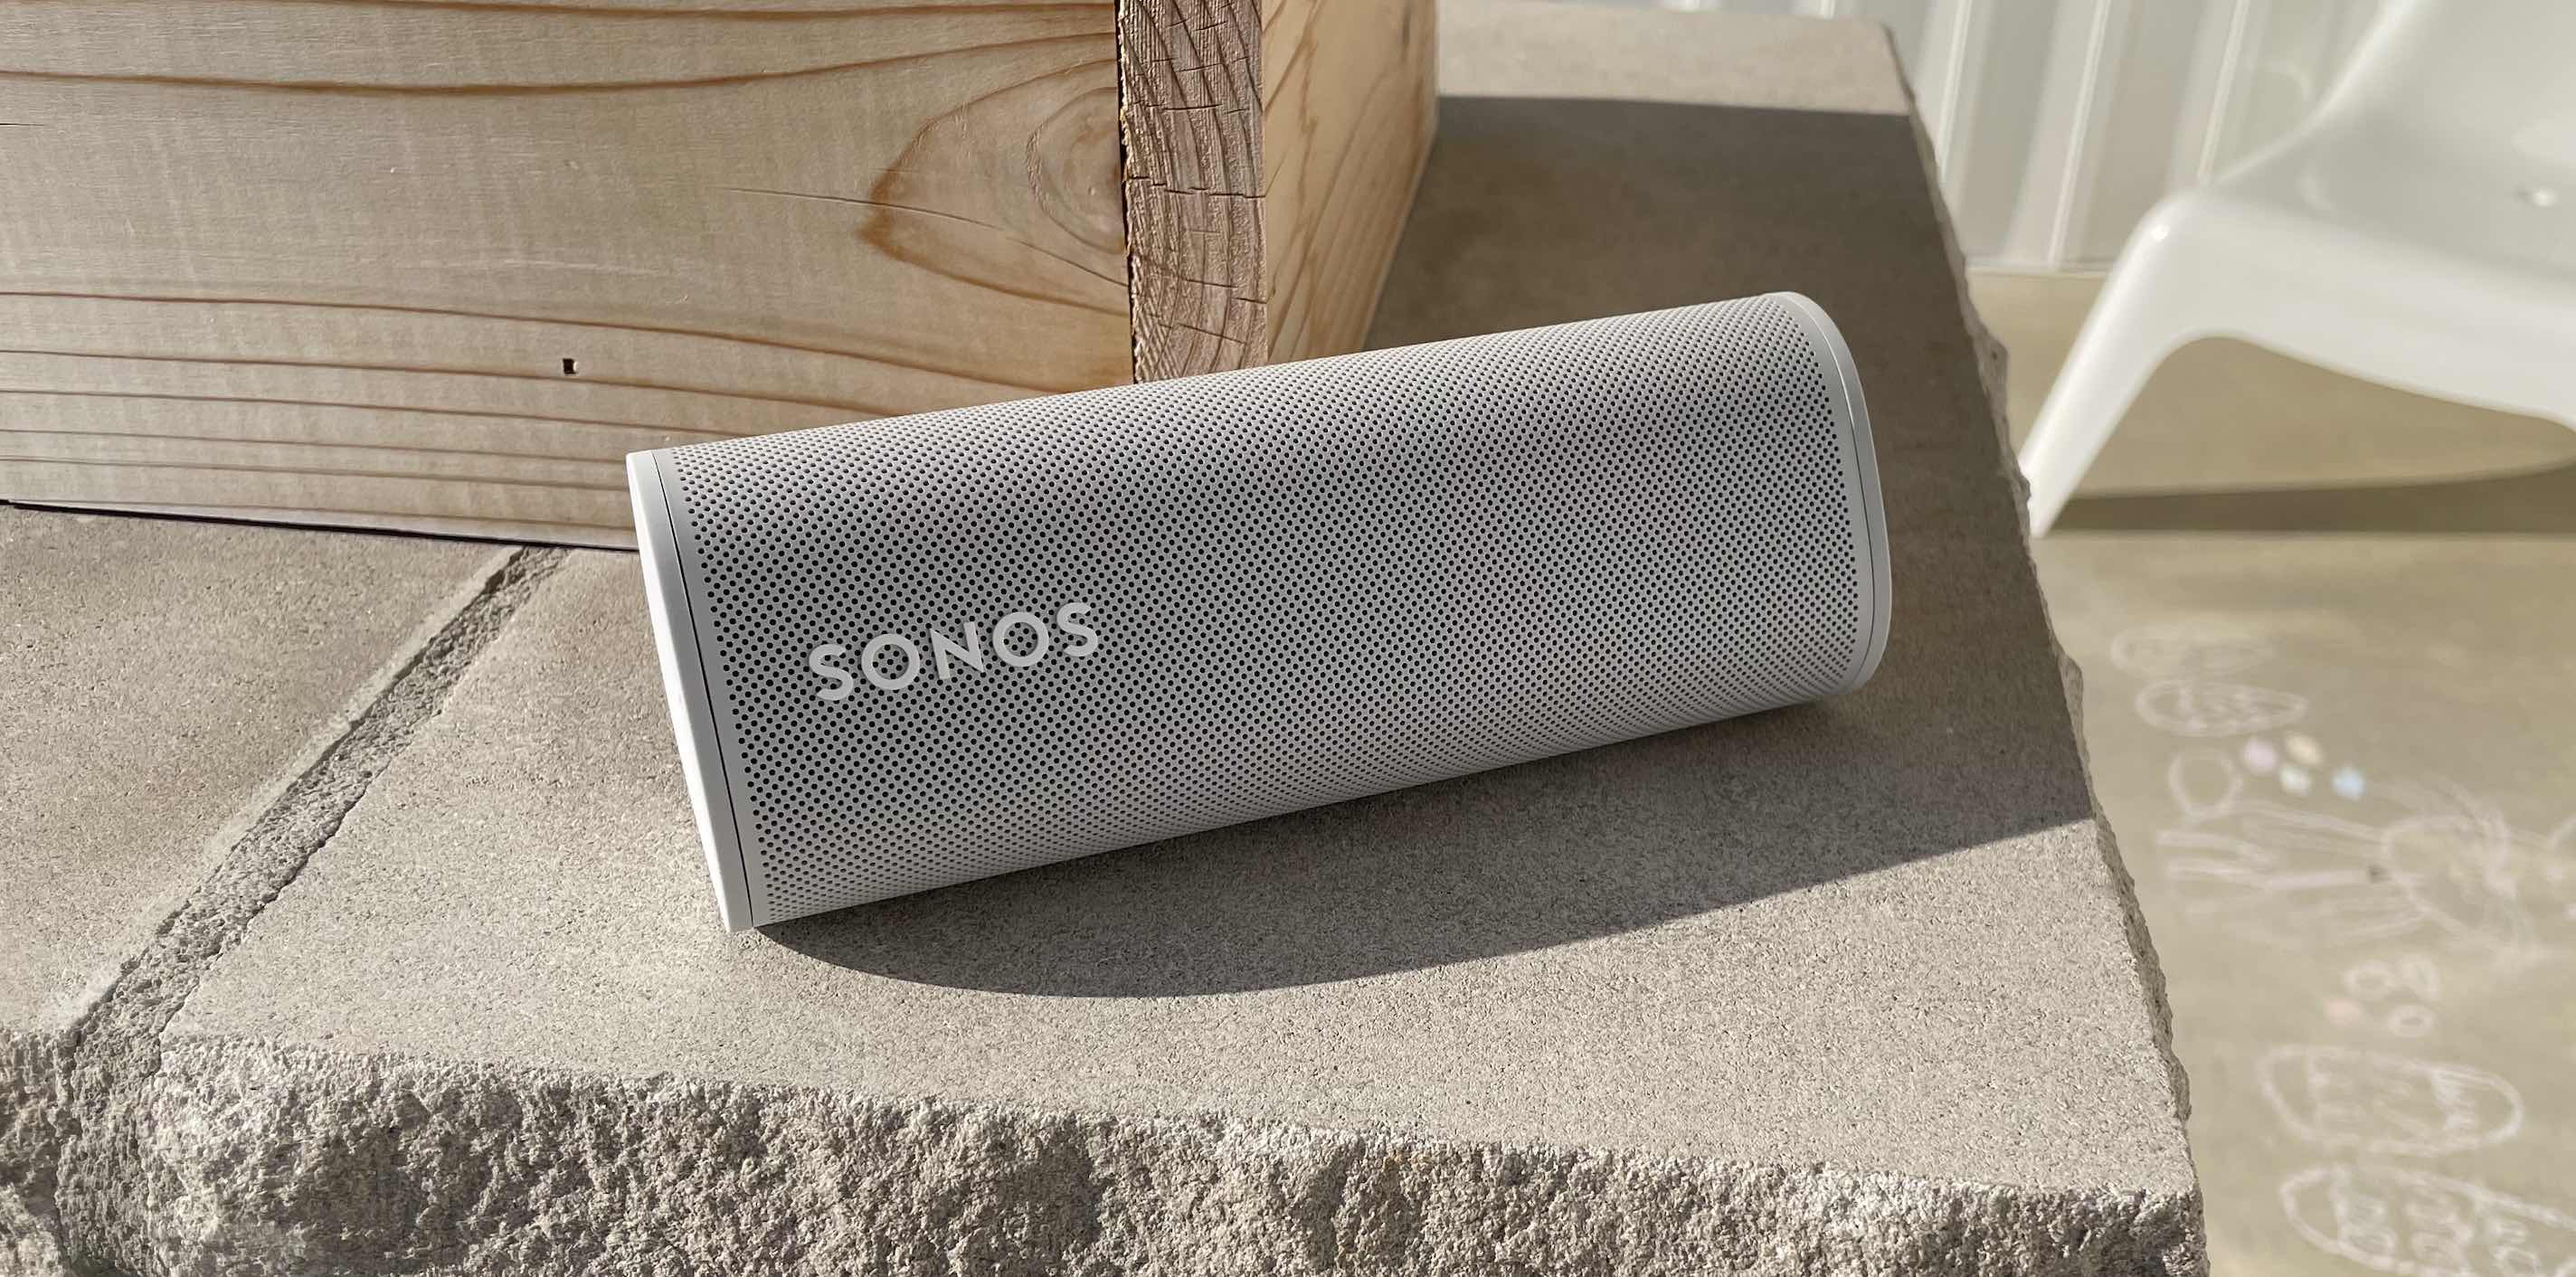 Sonos Roam ultra-portable speaker with AirPlay review – side shot